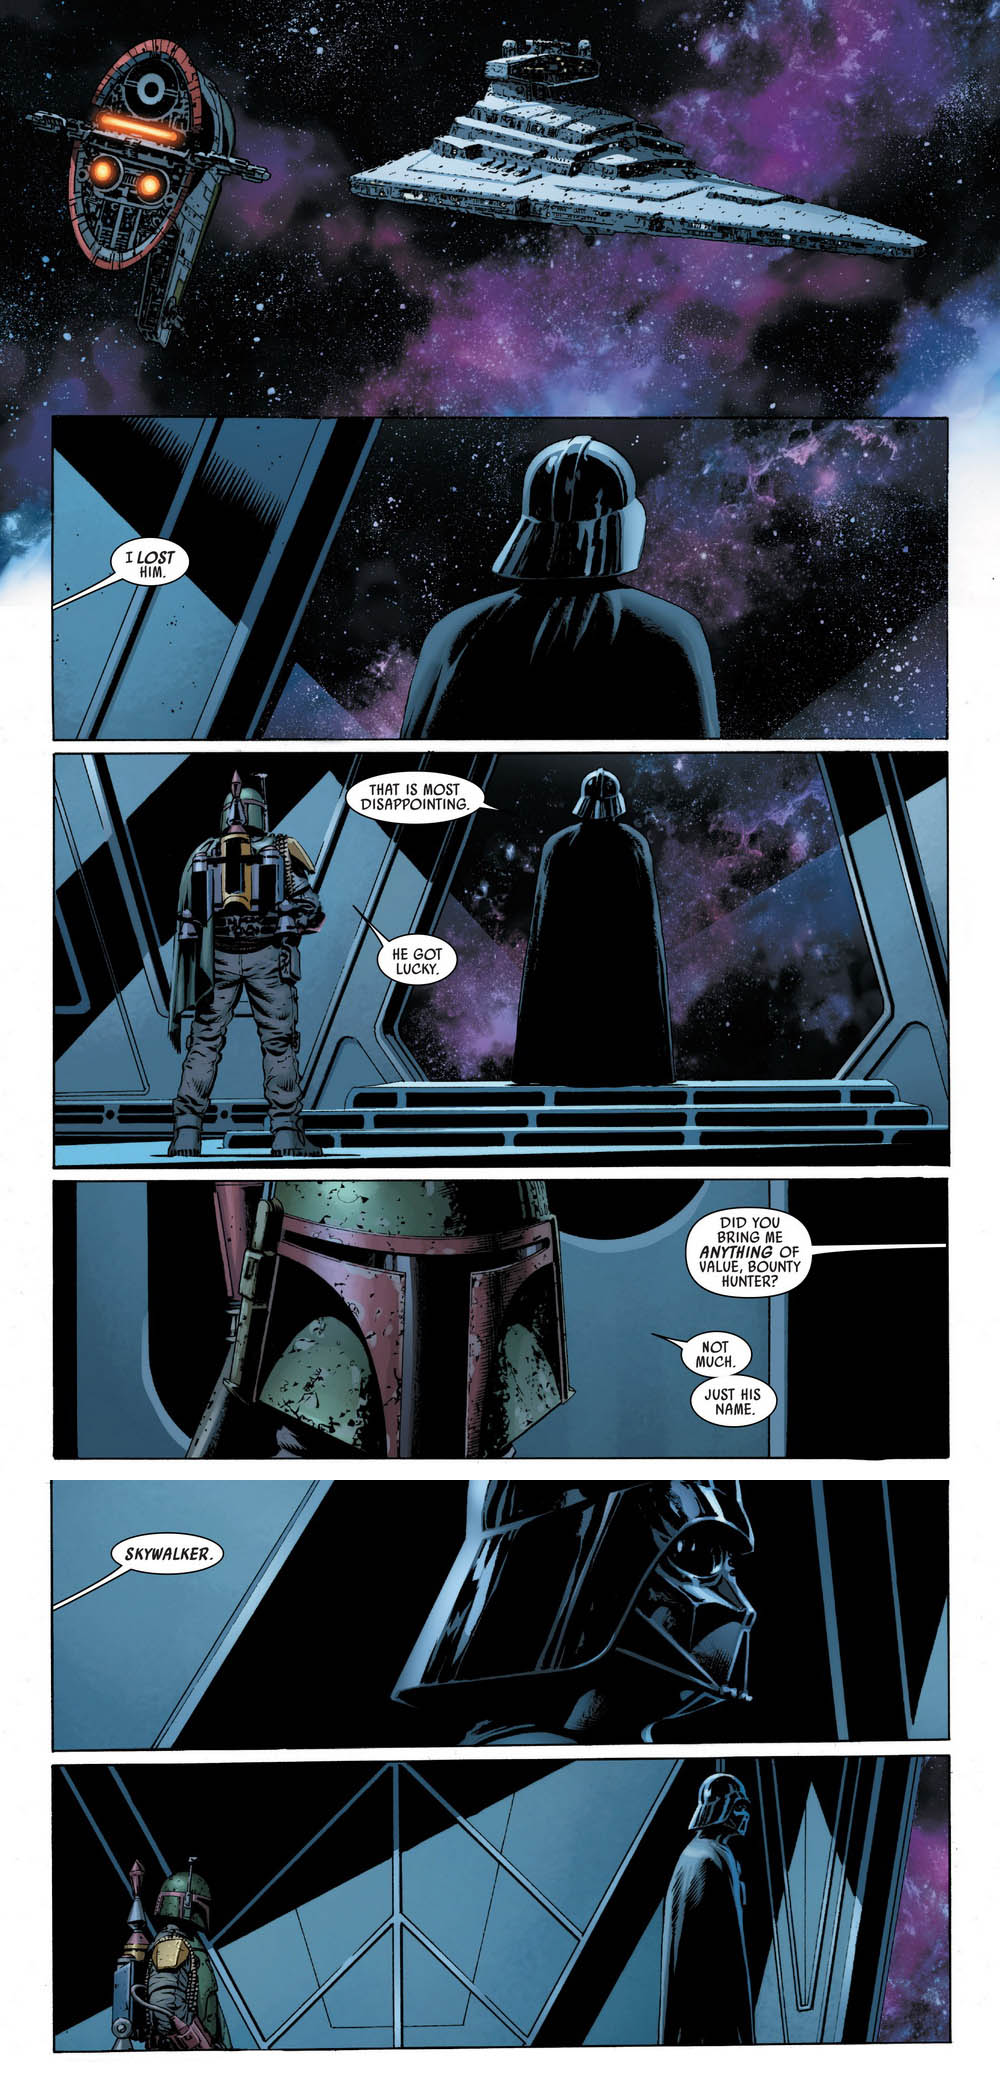 Strip of Star Wars comic. Boba Fett's ship Slave II approaching a Star Destroyer and Boba Fett and Darth Vader speaking. Boba Fett tells Vader that he didn't catch him, and that he didn't get anything except for his name, Skywalker.